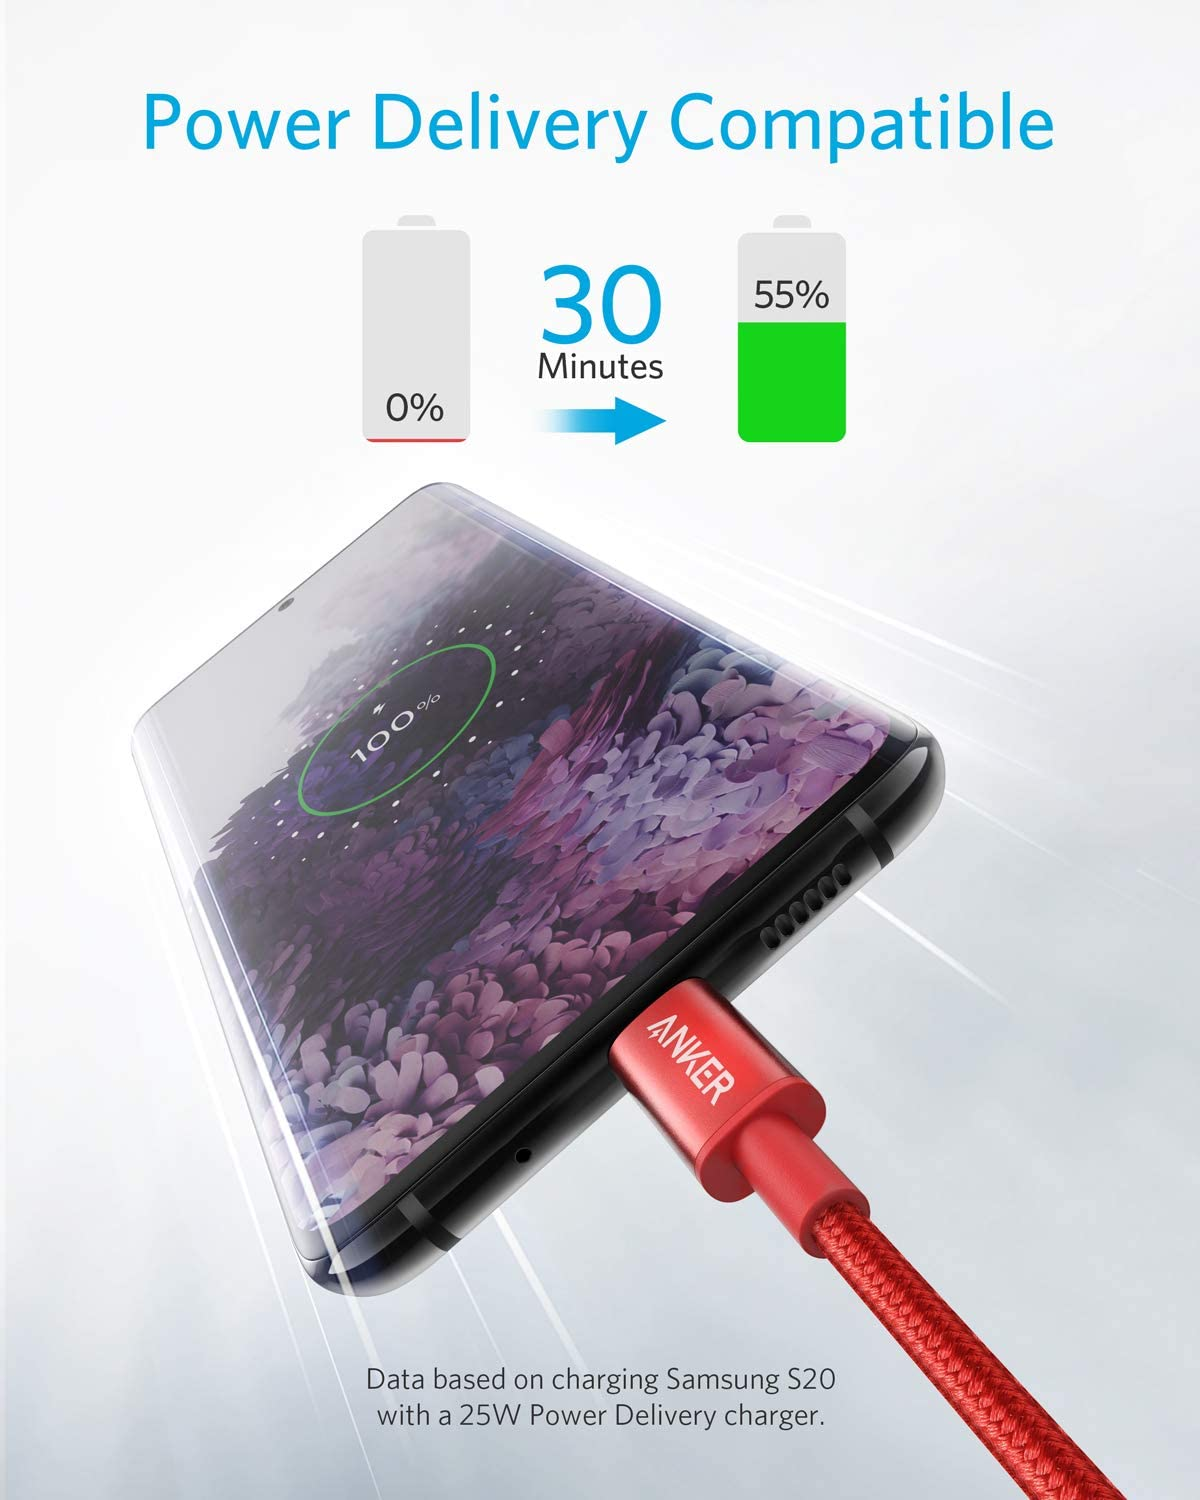 iPad Air 4 6ft 60W LG and Other USB C Charger Red Switch Pixel iPad Pro Anker 2 Pack New Nylon USB C to USB C Cable USB C Cable PD Type C Charging Cable for MacBook Pro 2020 Galaxy S20